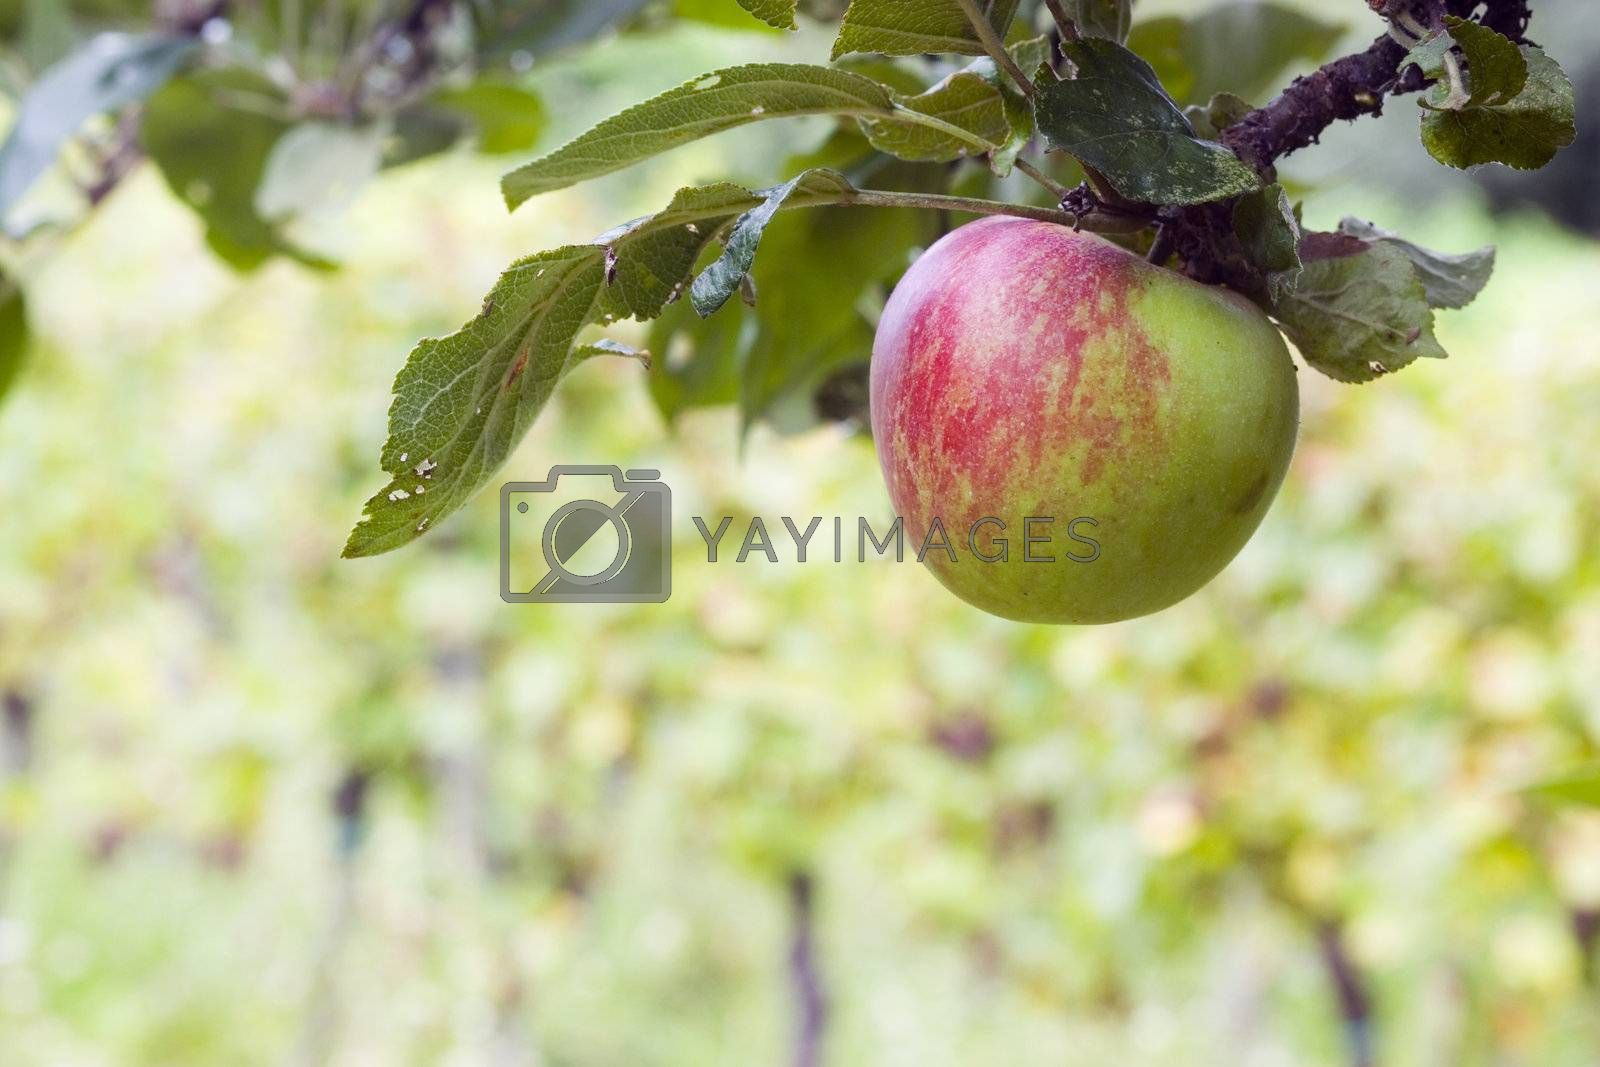 Red and green apple hanging from a tree branch in an apple orchard